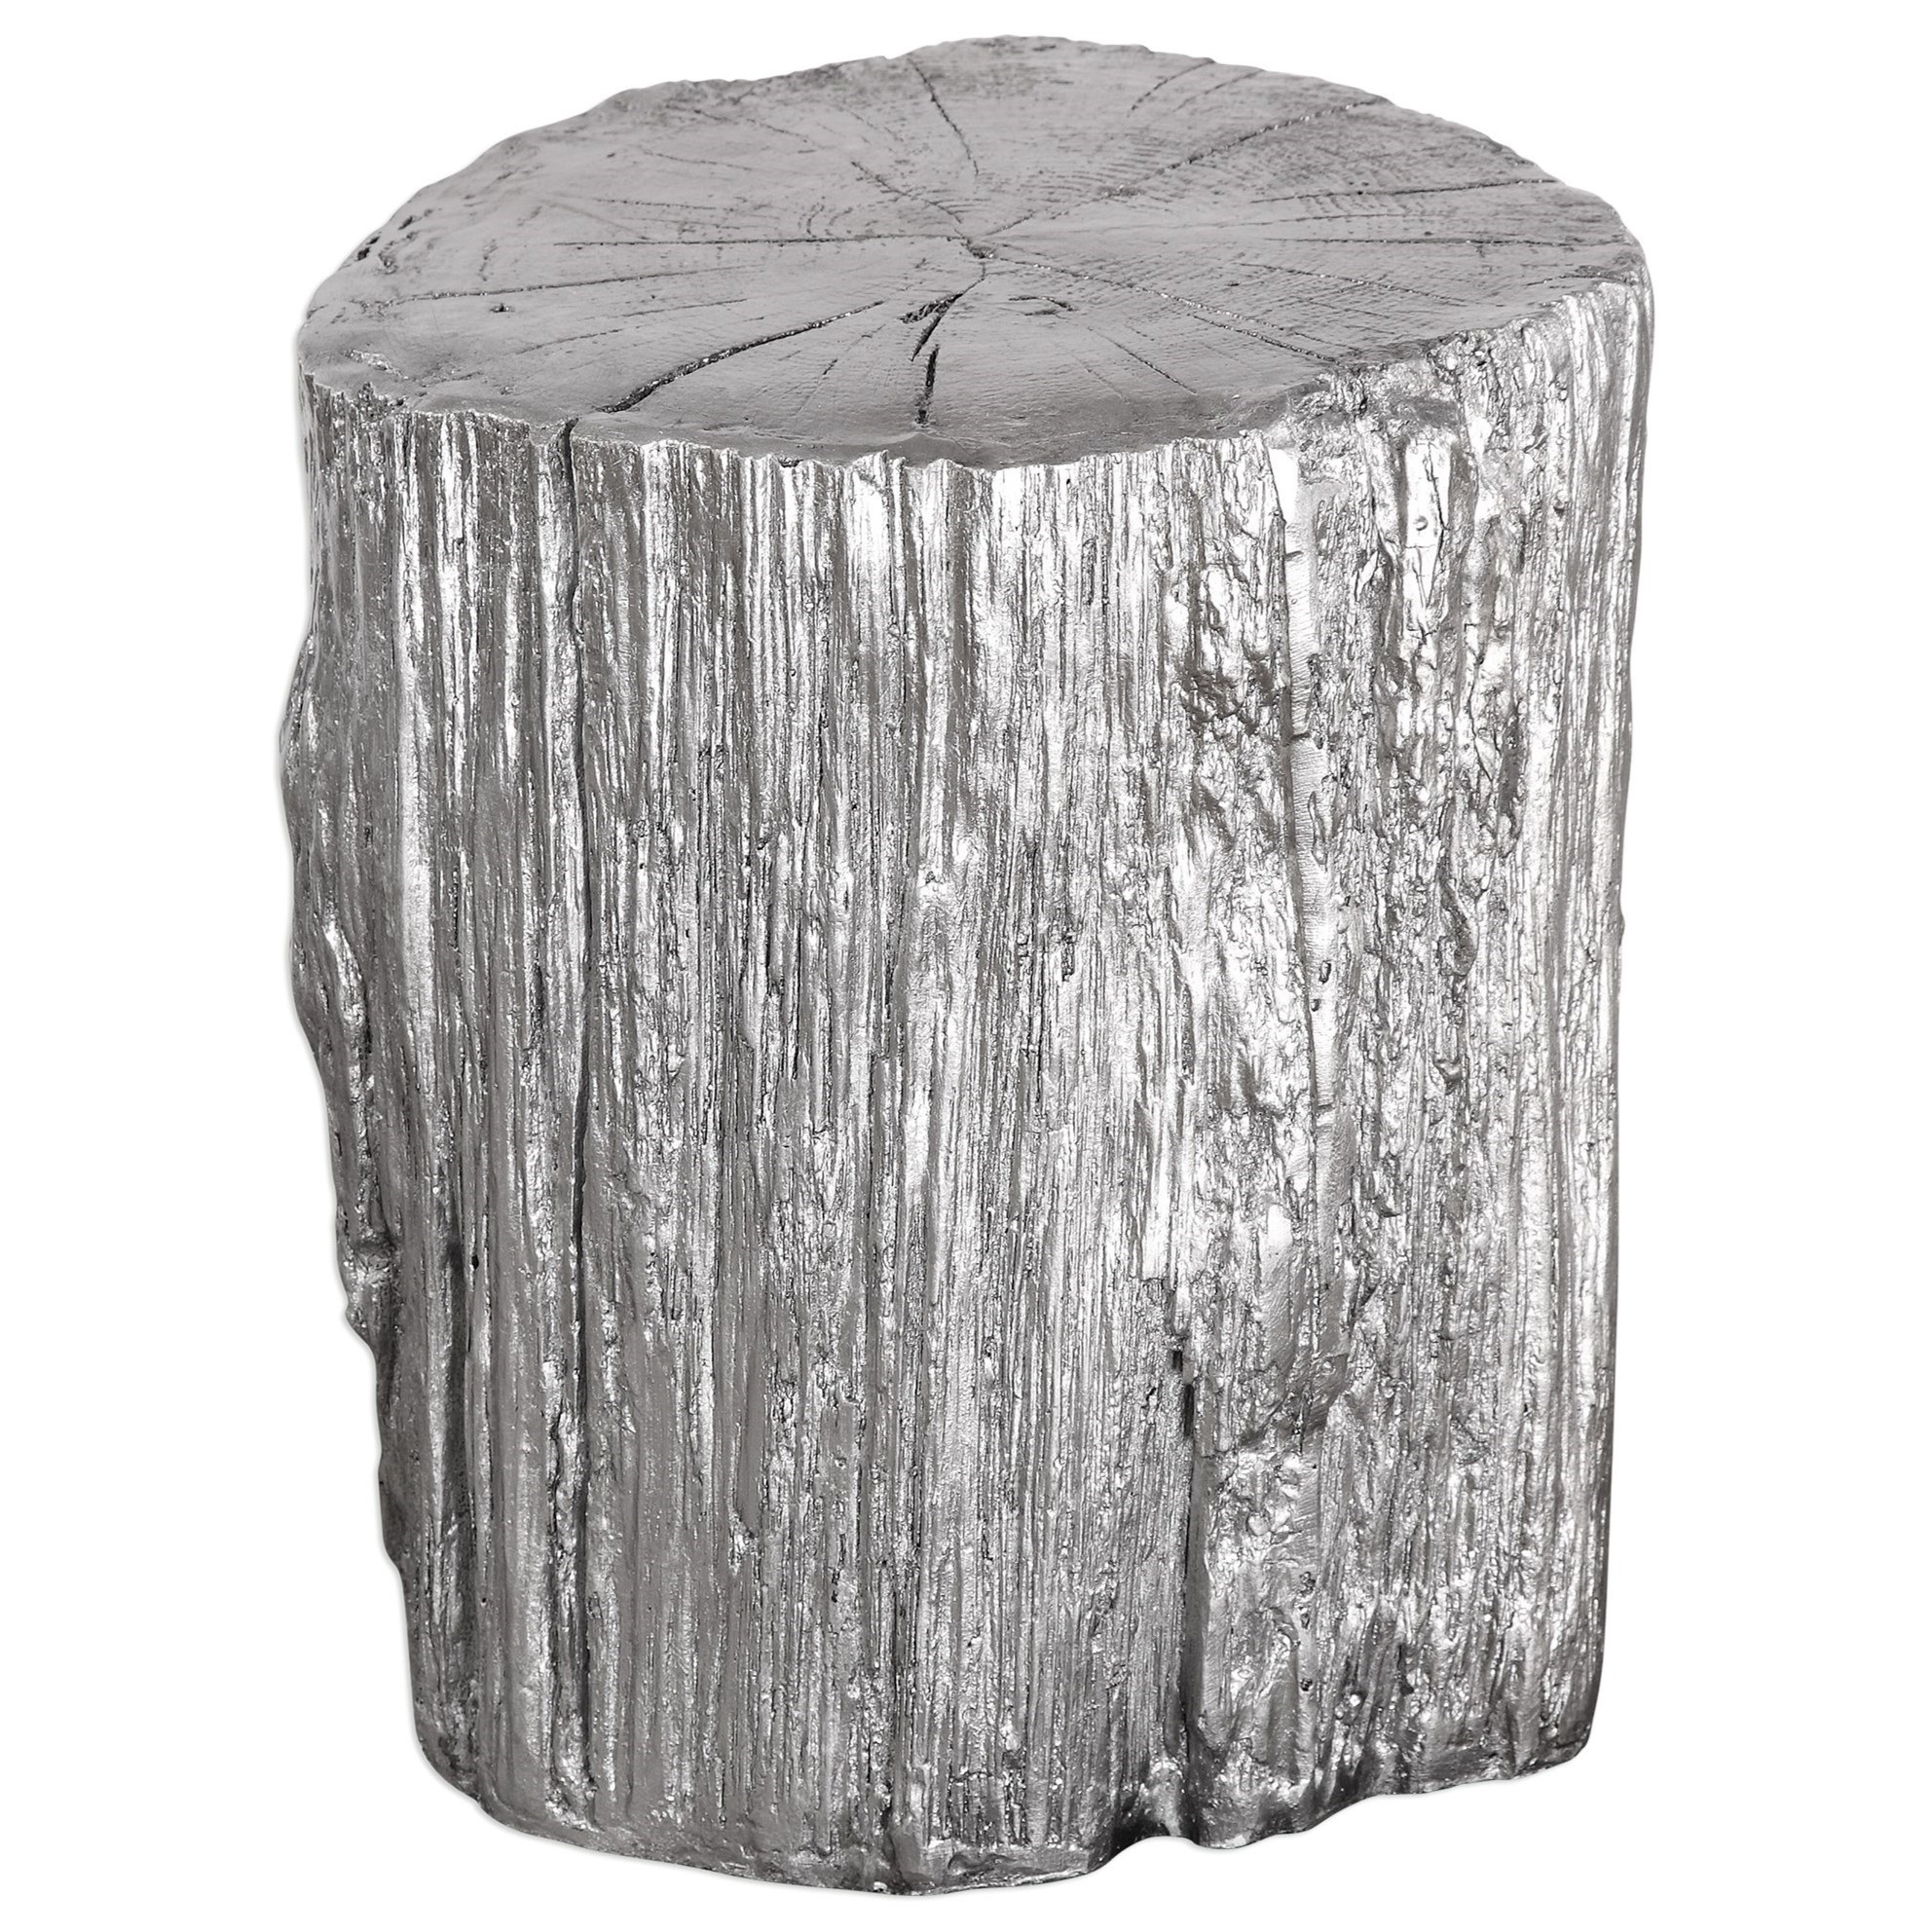 Accent Furniture - Benches  Cambium Silver Tree Stump Stool by Uttermost at Del Sol Furniture